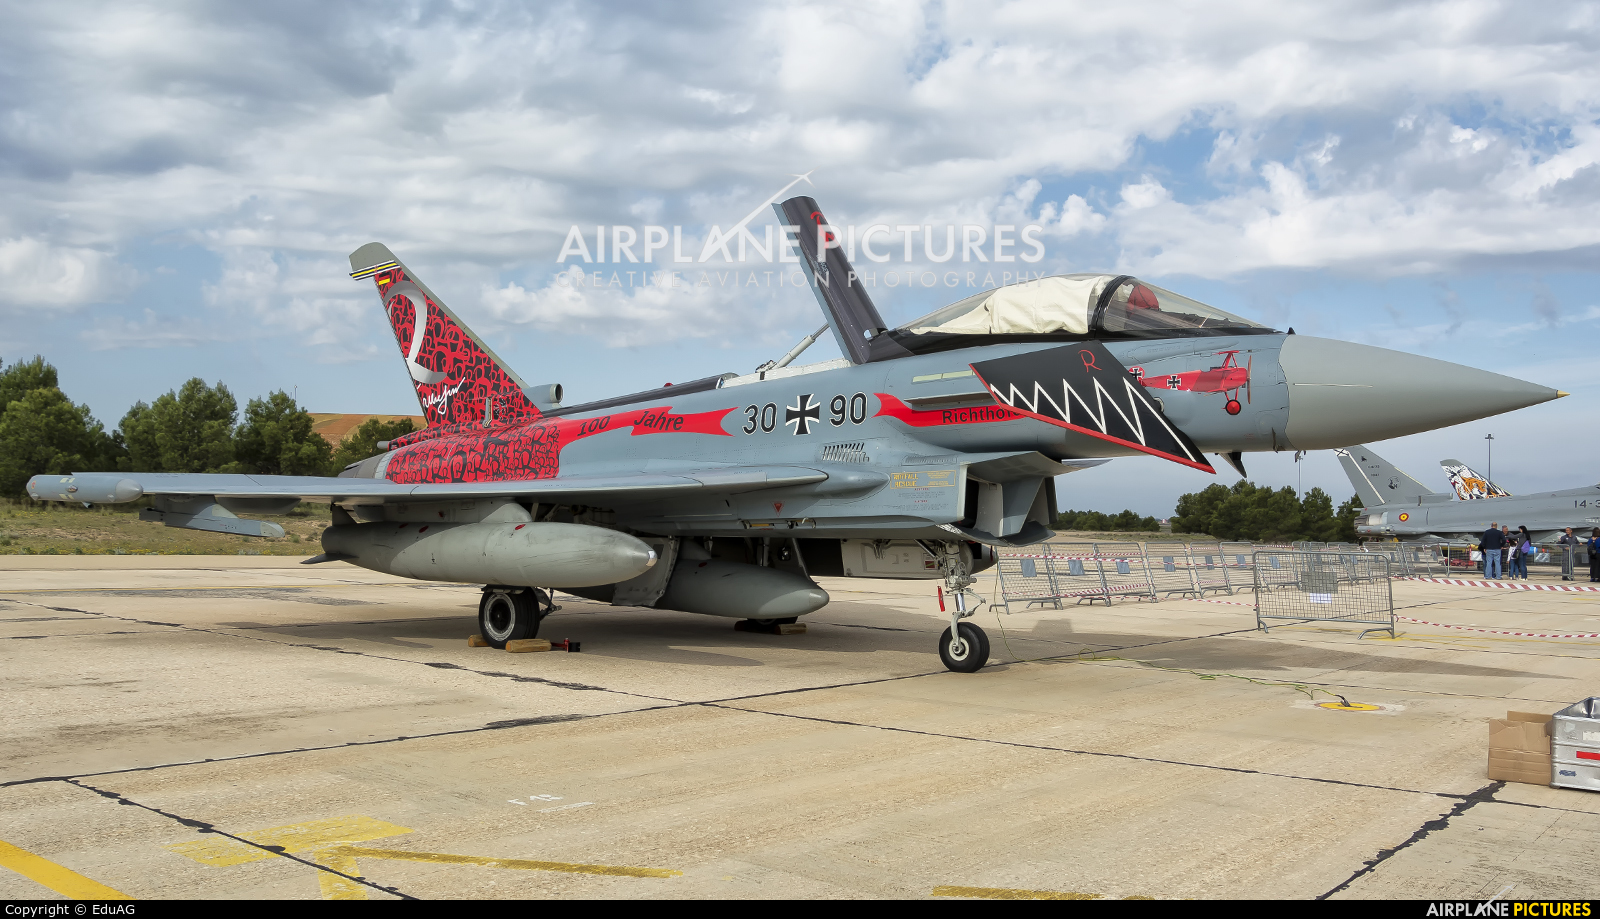 30+90 - Germany - Air Force Eurofighter Typhoon at Albacete   Photo